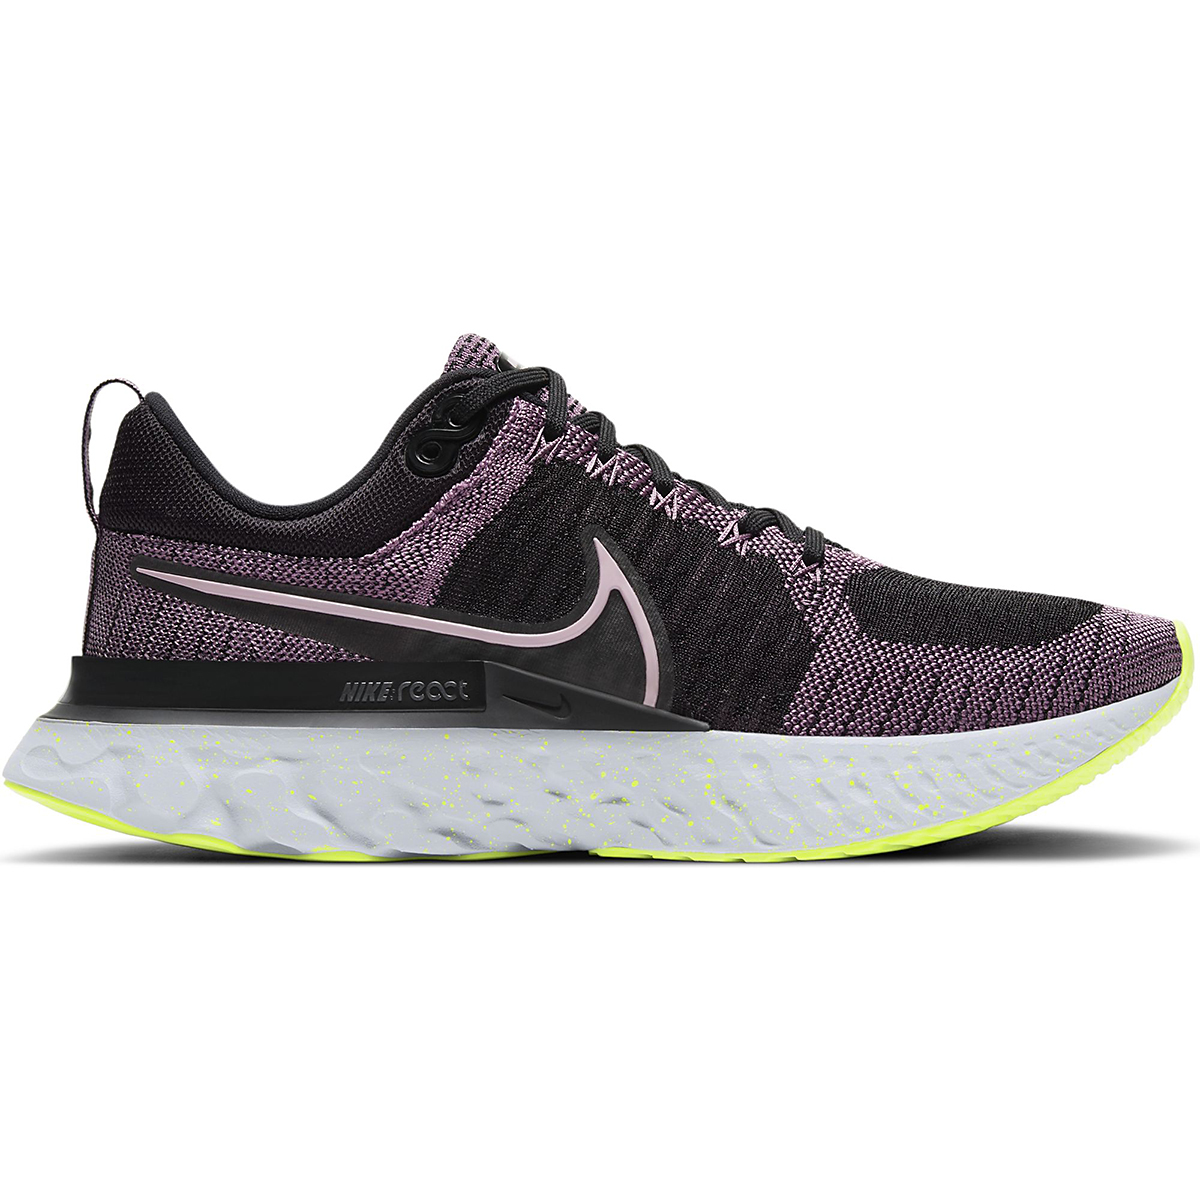 Women's Nike React Infinity Run Flyknit 2 Running Shoe - Color: Violet Dust/Elemental Pink/Black/Cyber - Size: 5.5 - Width: Regular, Violet Dust/Elemental Pink/Black/Cyber, large, image 1